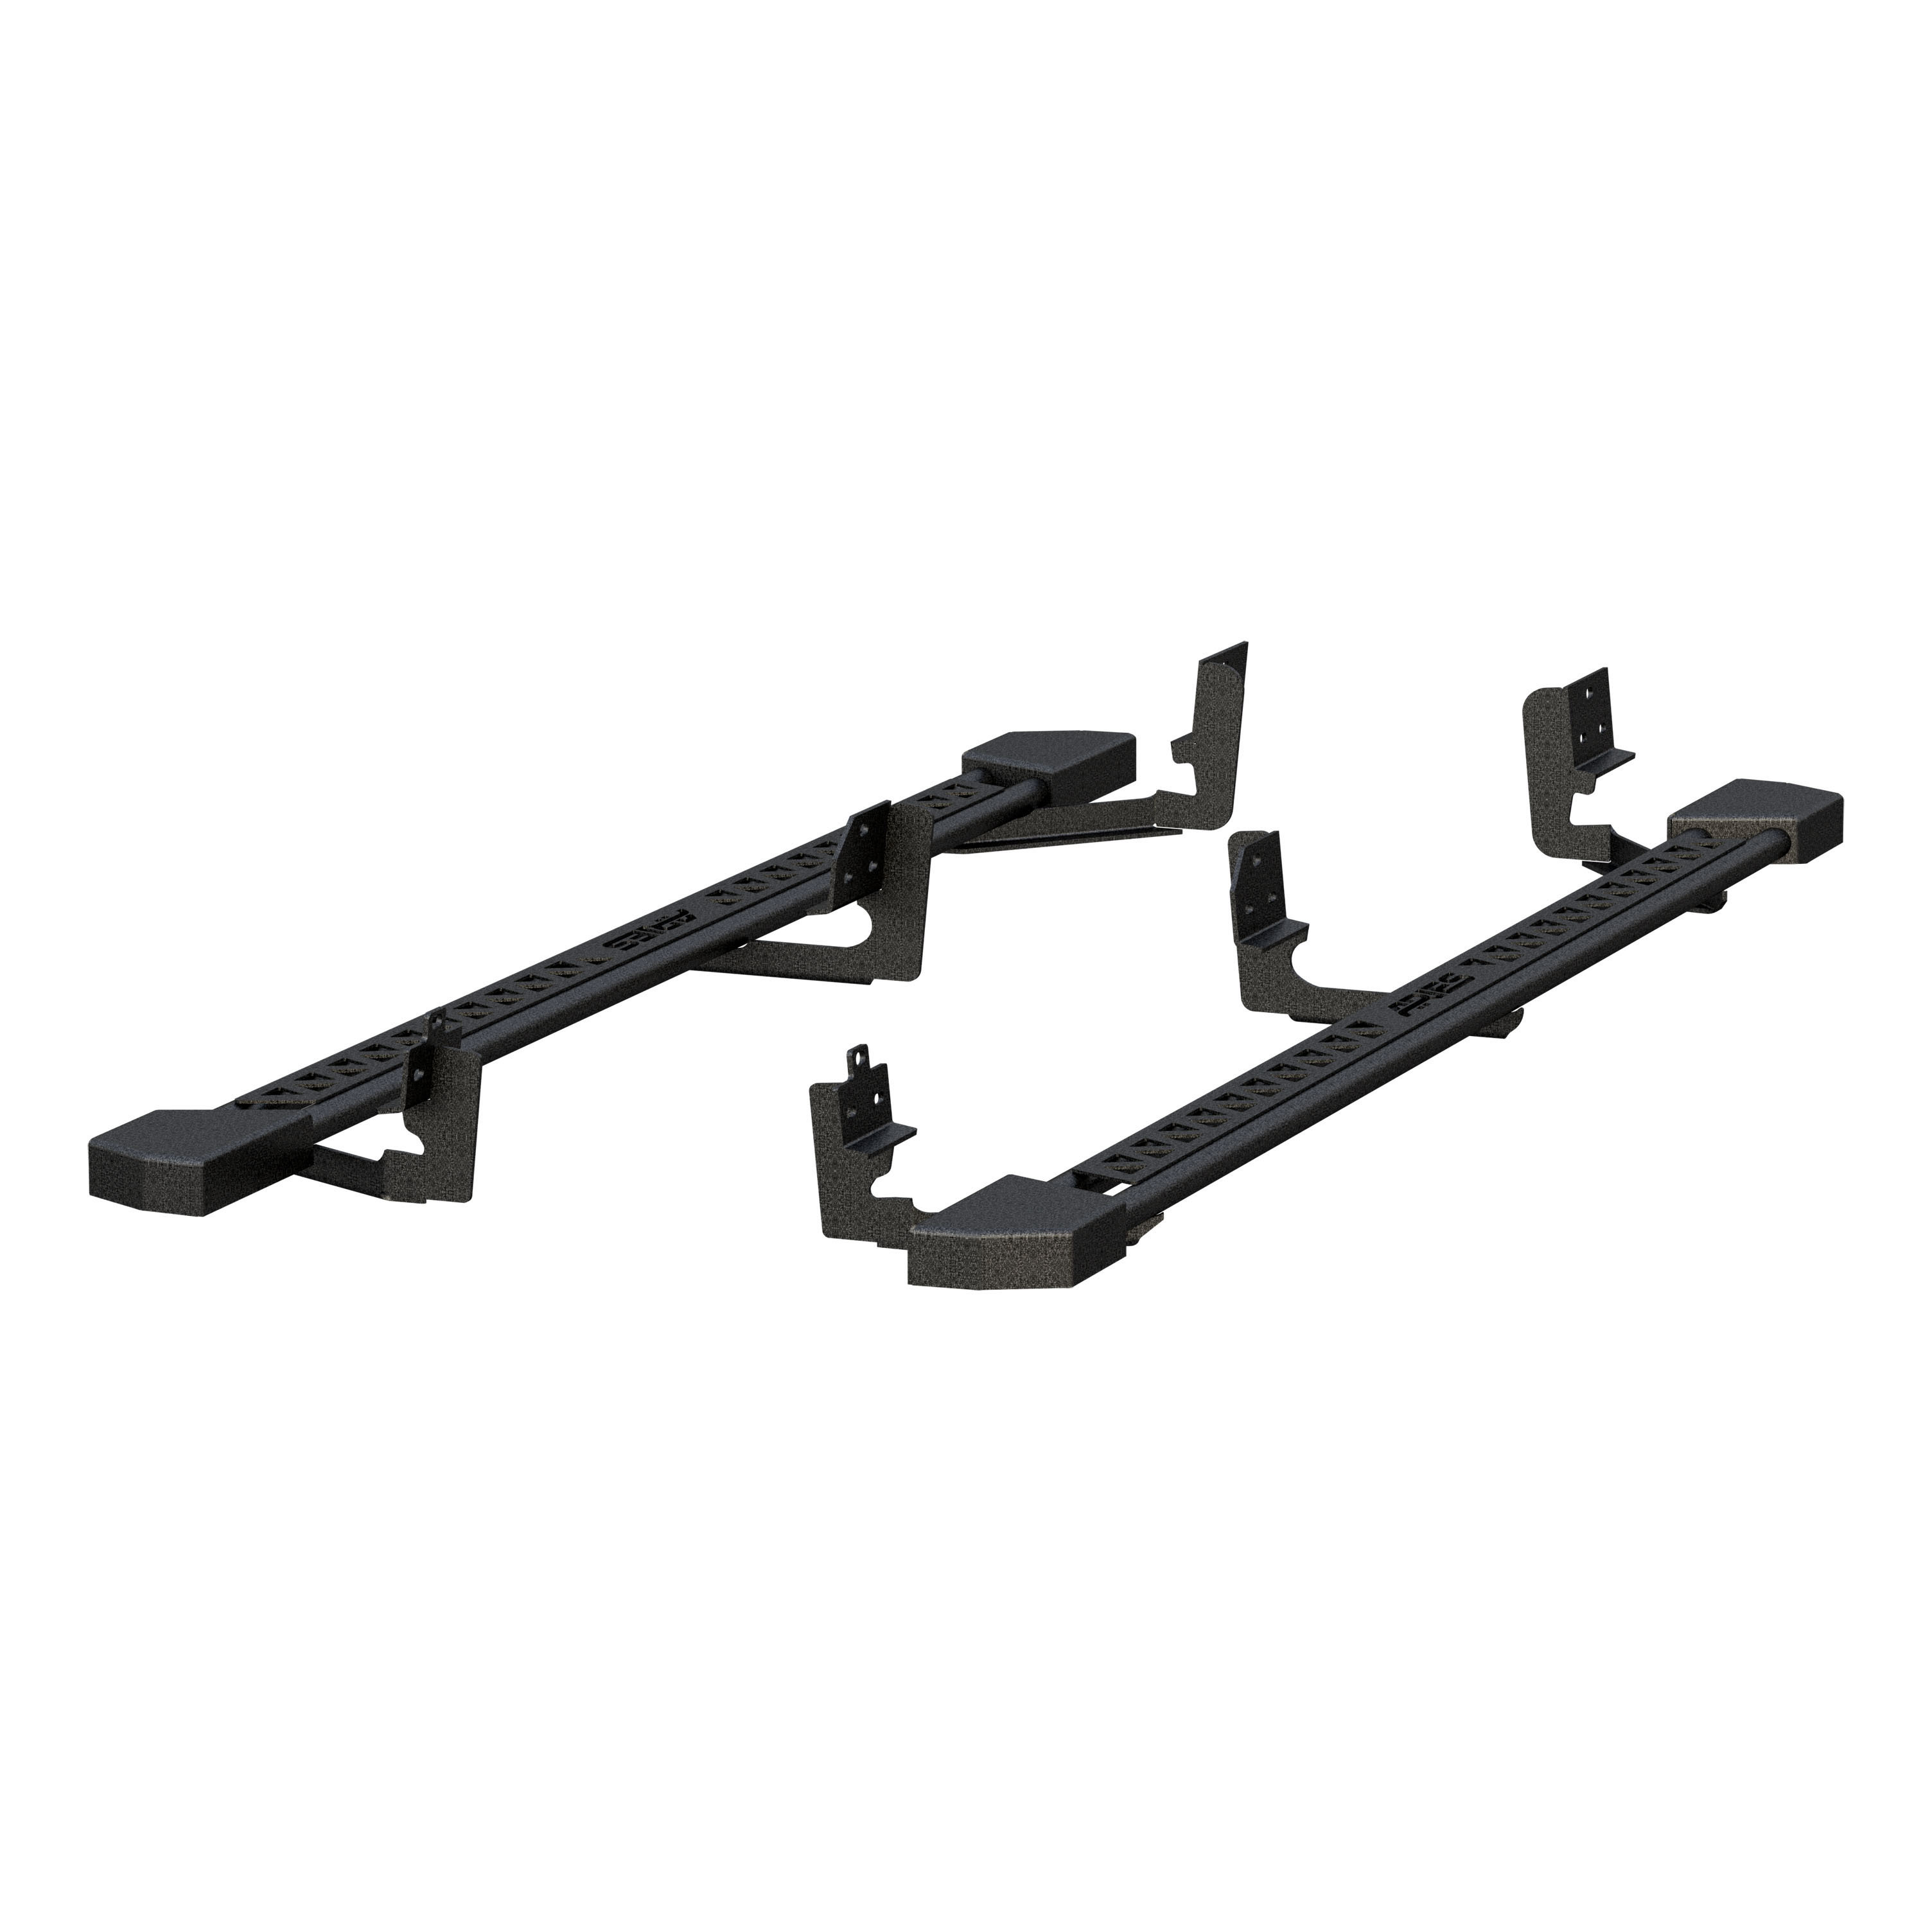 2074110 Aries Nerf Bar With Full Length Step Plate